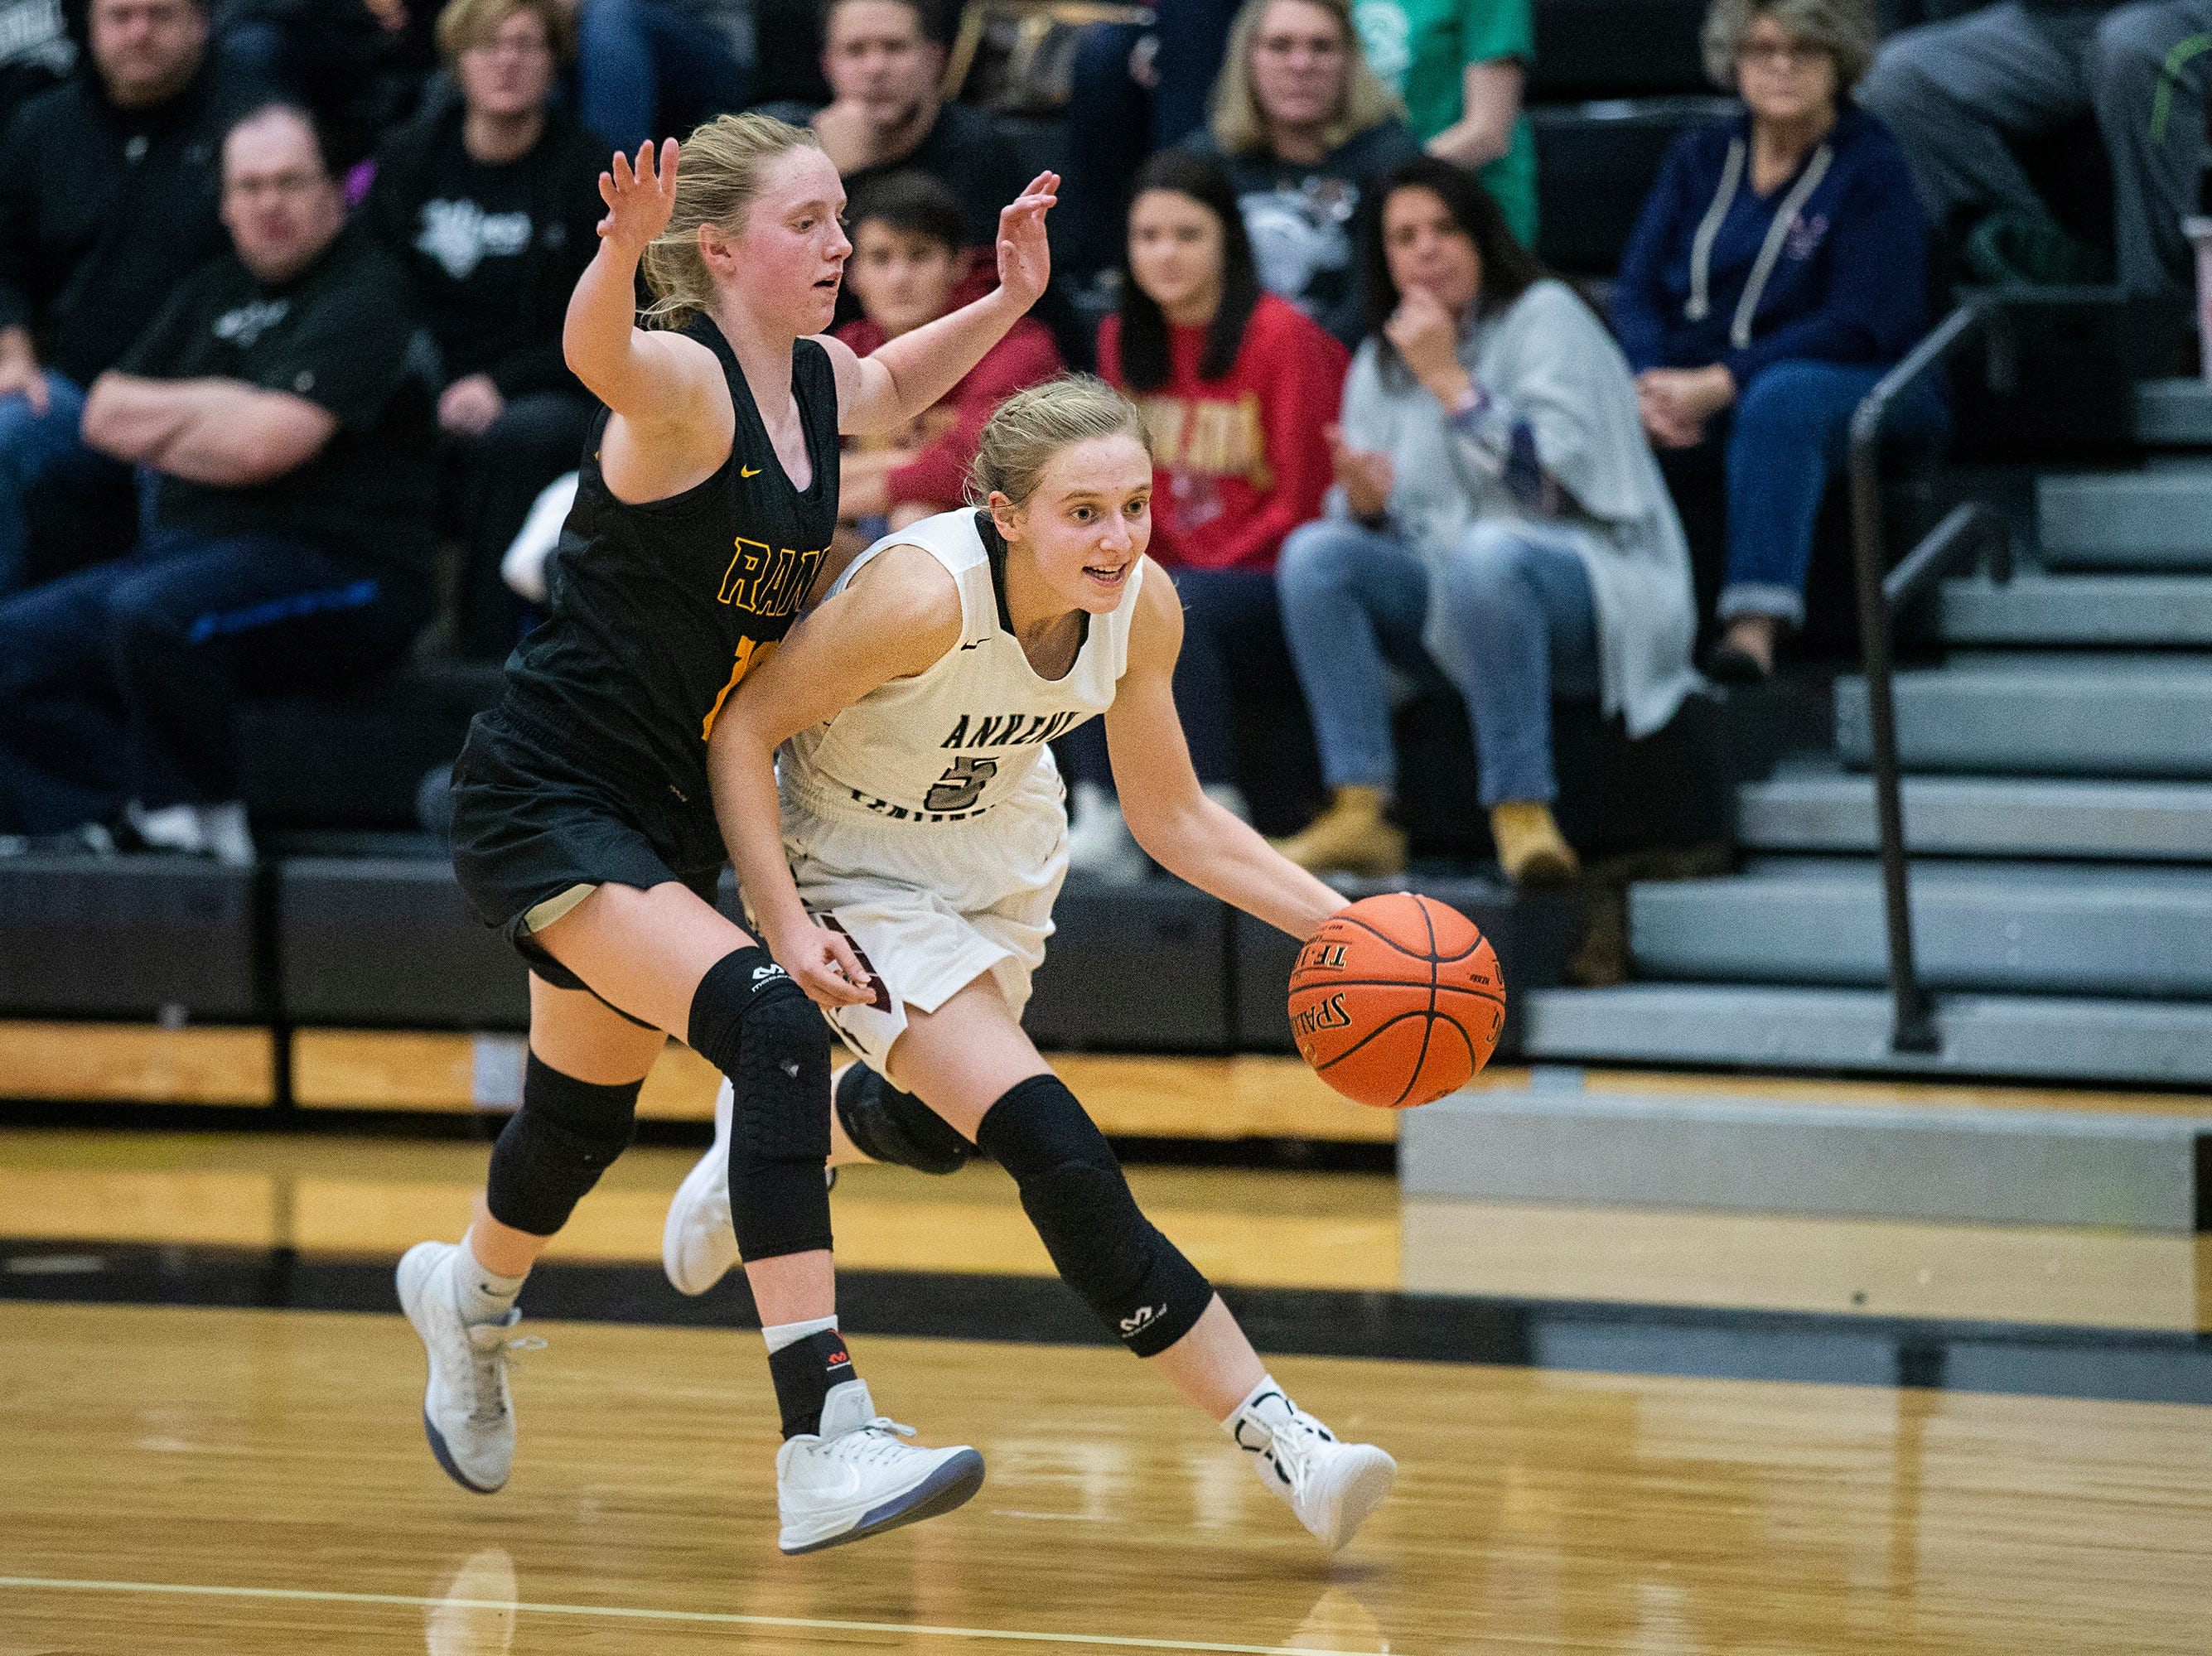 Centennial's Taylor Runchey brings the ball down the court during the Southeast Polk vs. Ankeny Centennial girls' basketball game on Tuesday, Nov. 27, 2018, at Ankeny Centennial High School.